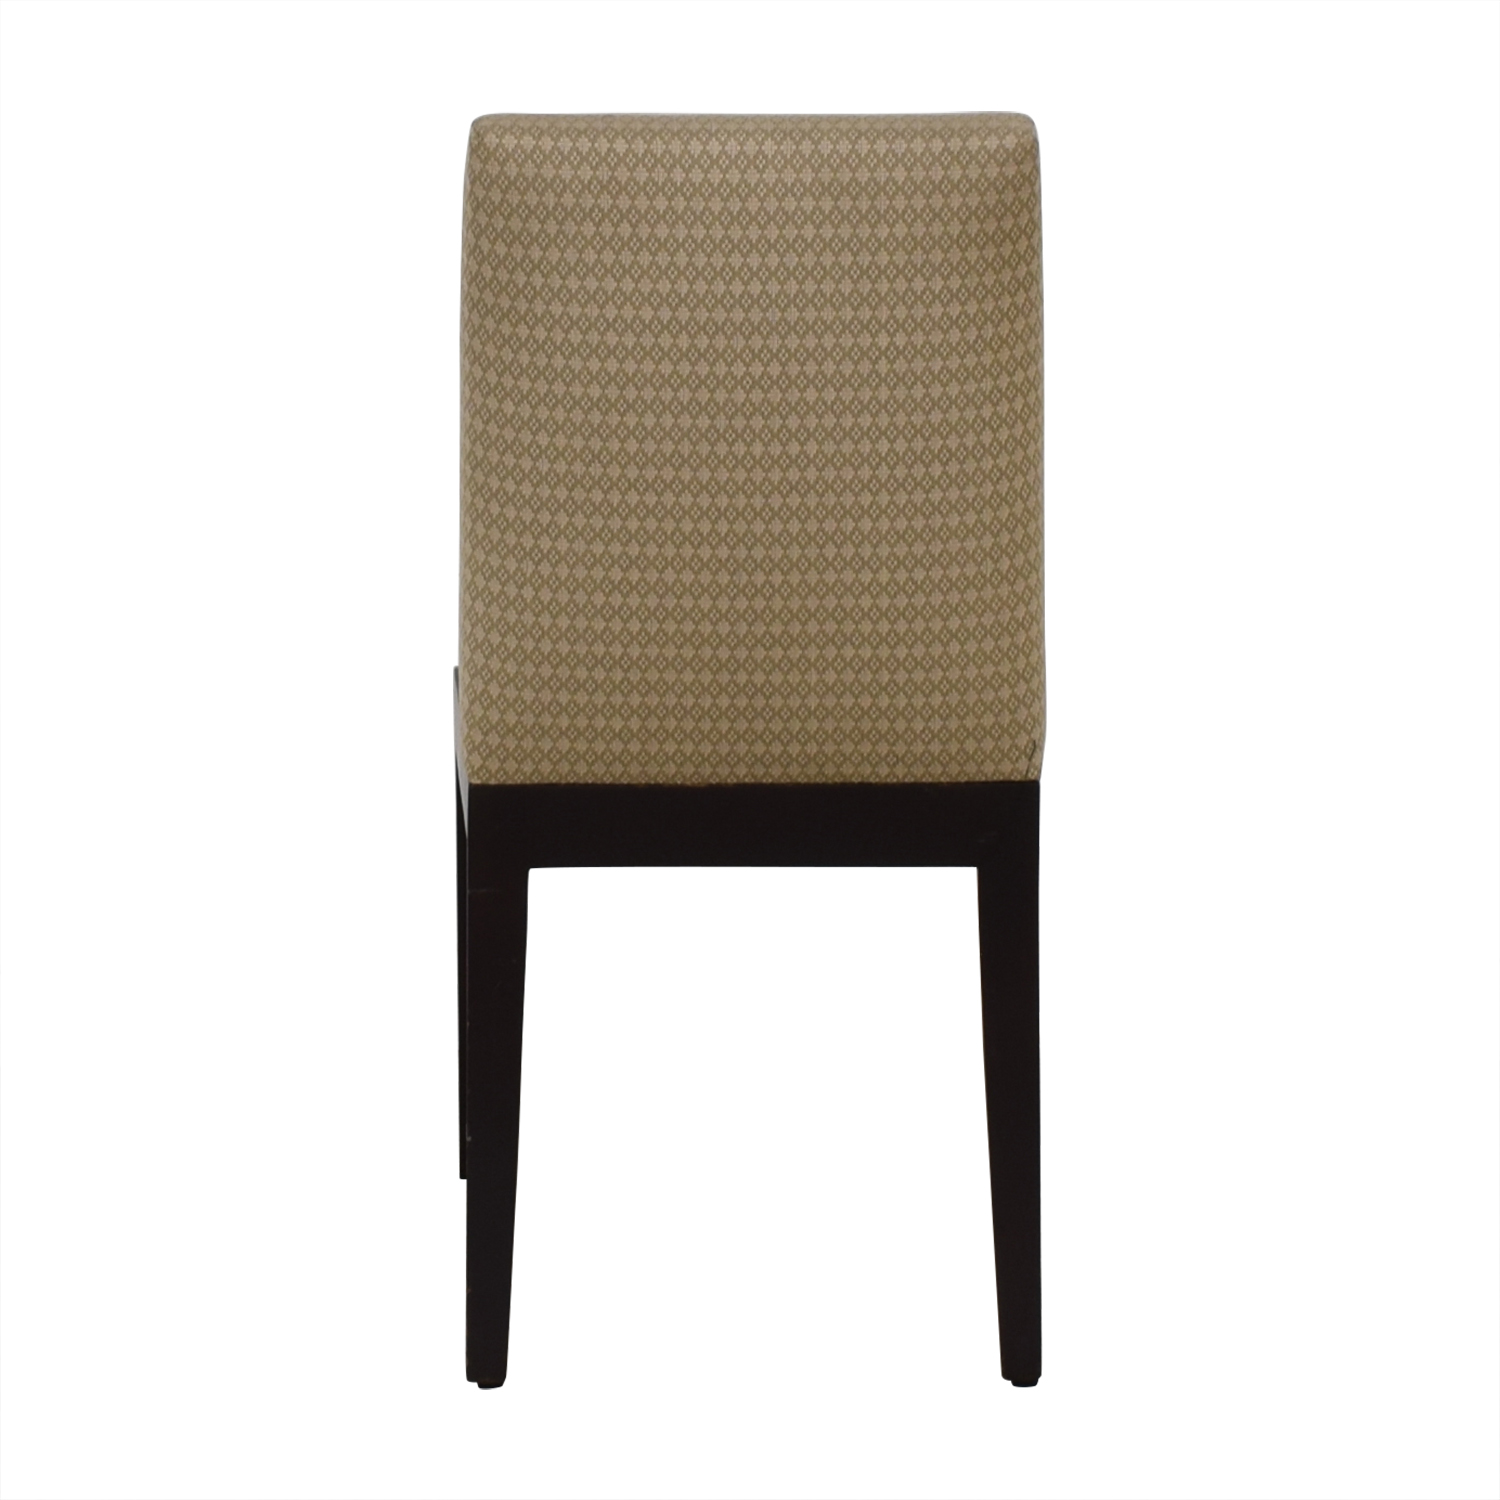 Furniture Masters Furniture Masters Accent Chair nyc